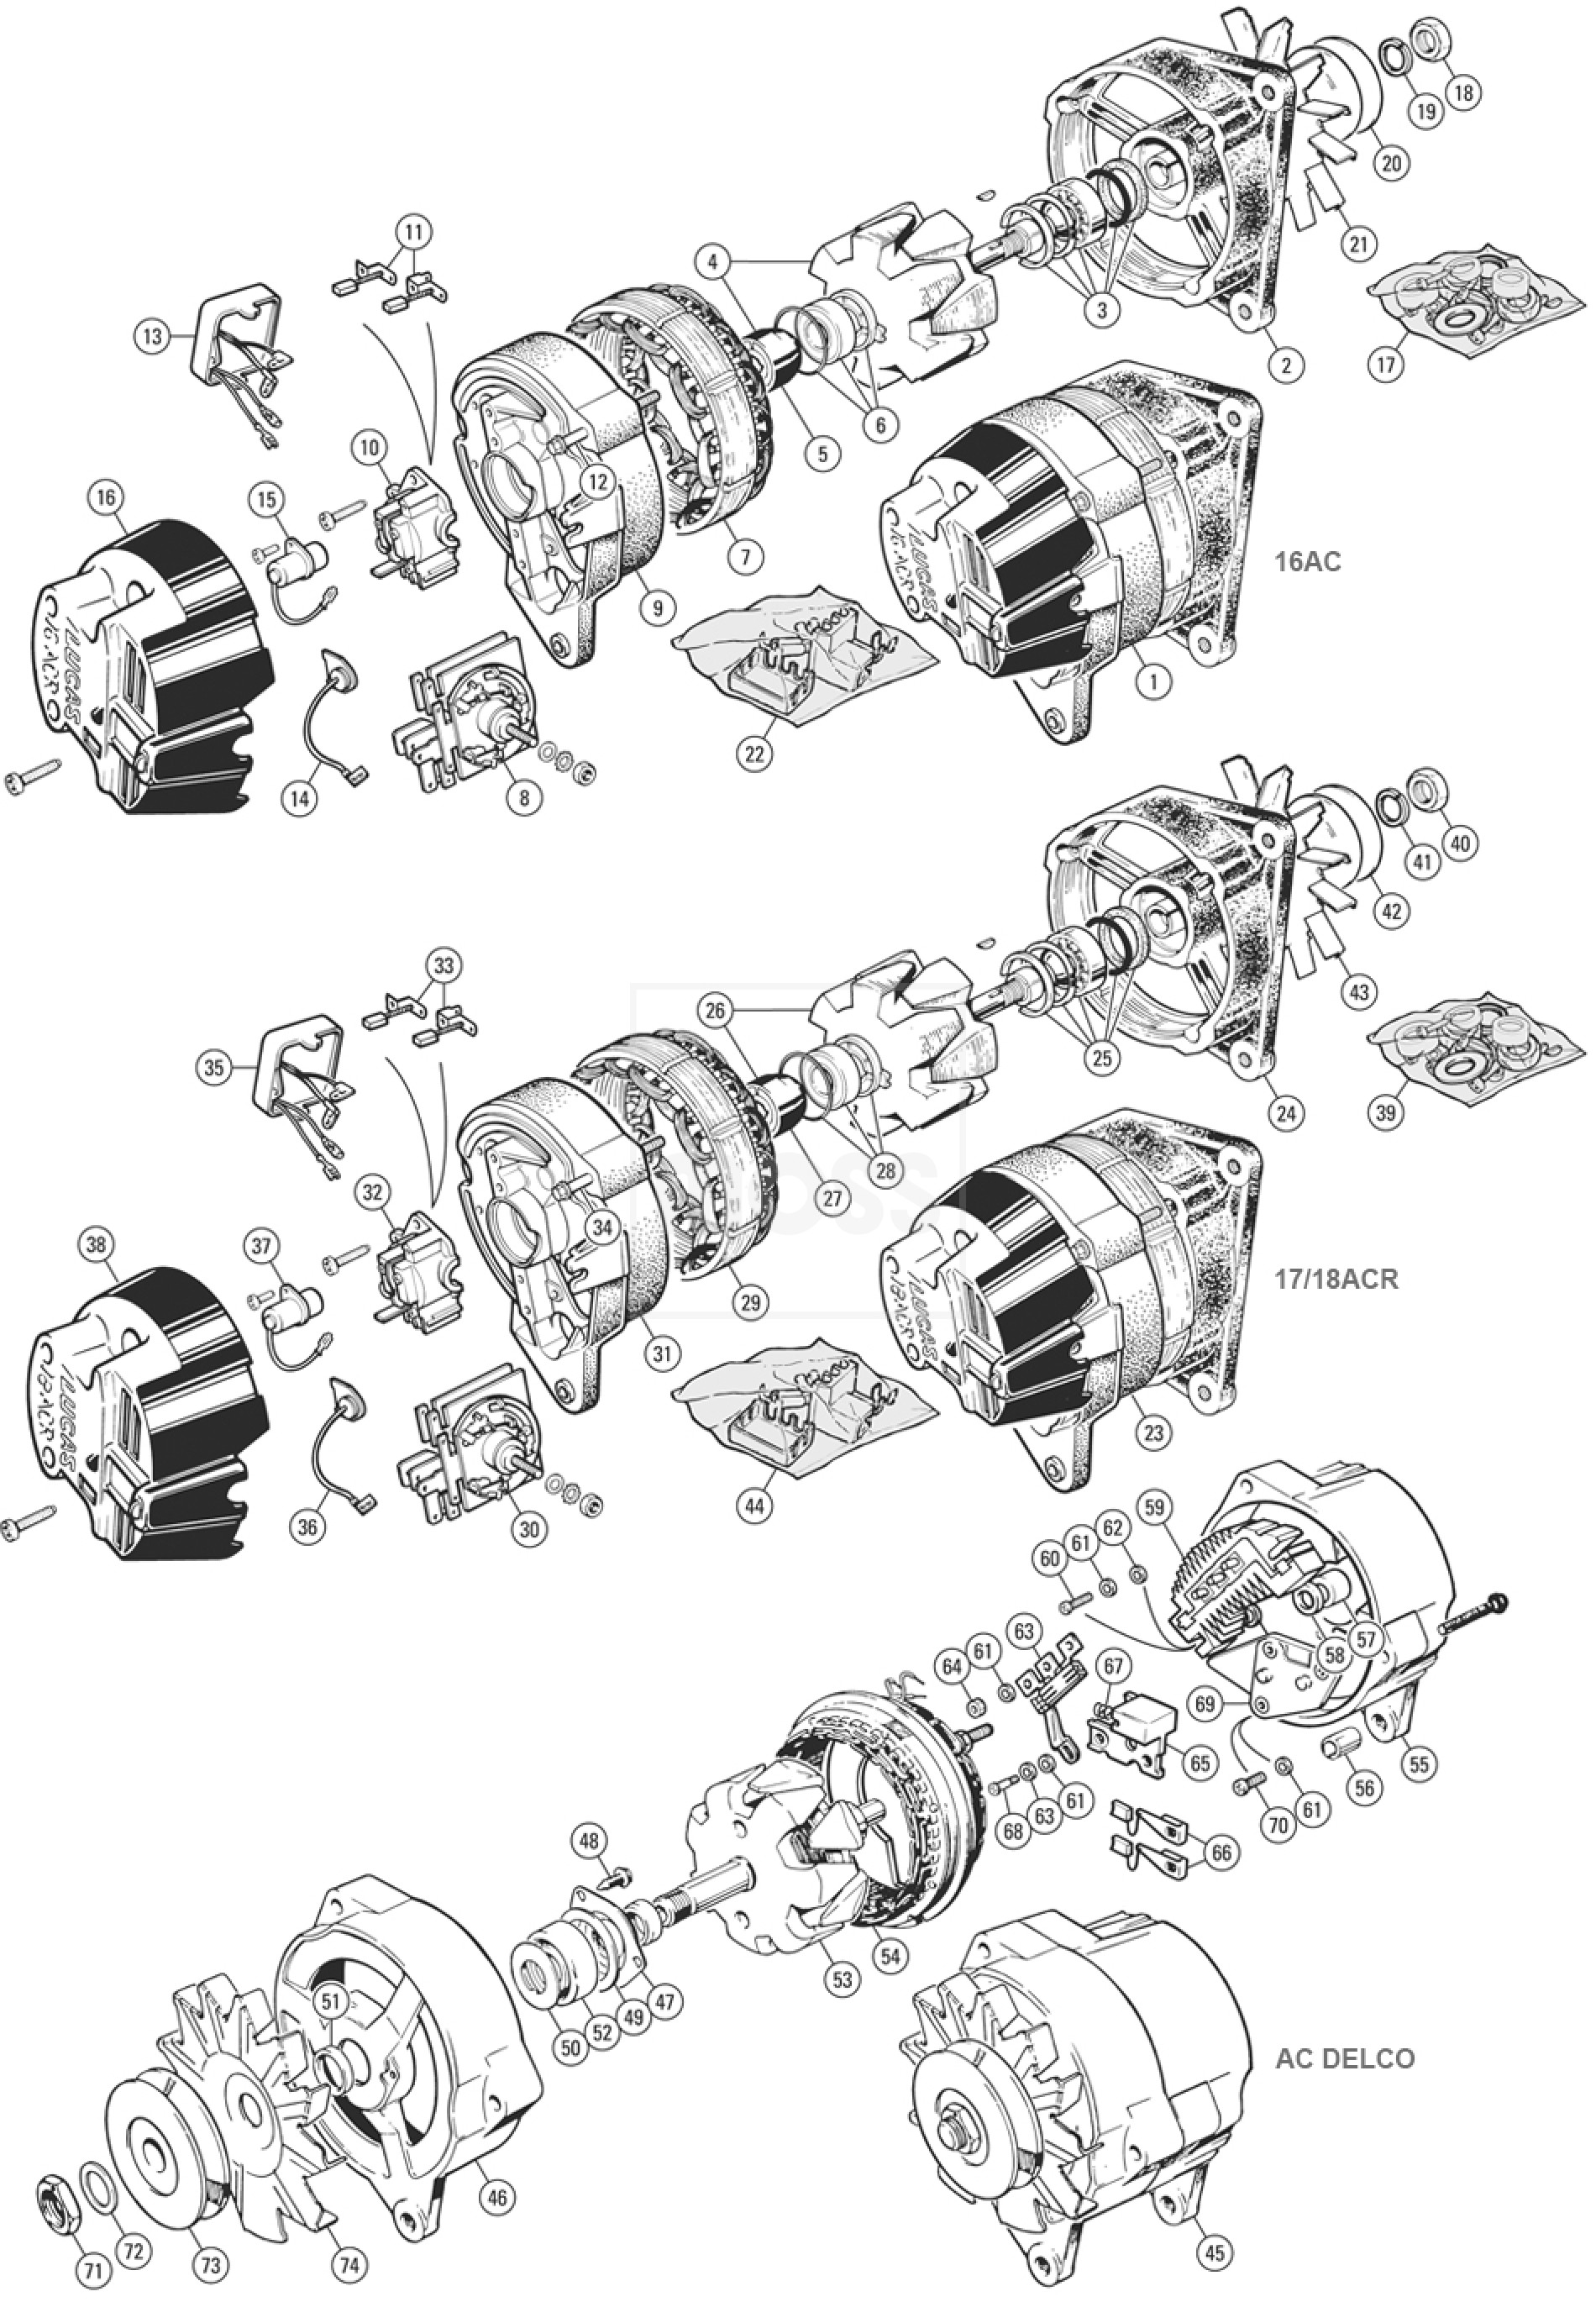 acdelco one wire alternator wiring diagram ao smith fan motor and fittings lucas 16acr 17acr 18acr ac delco